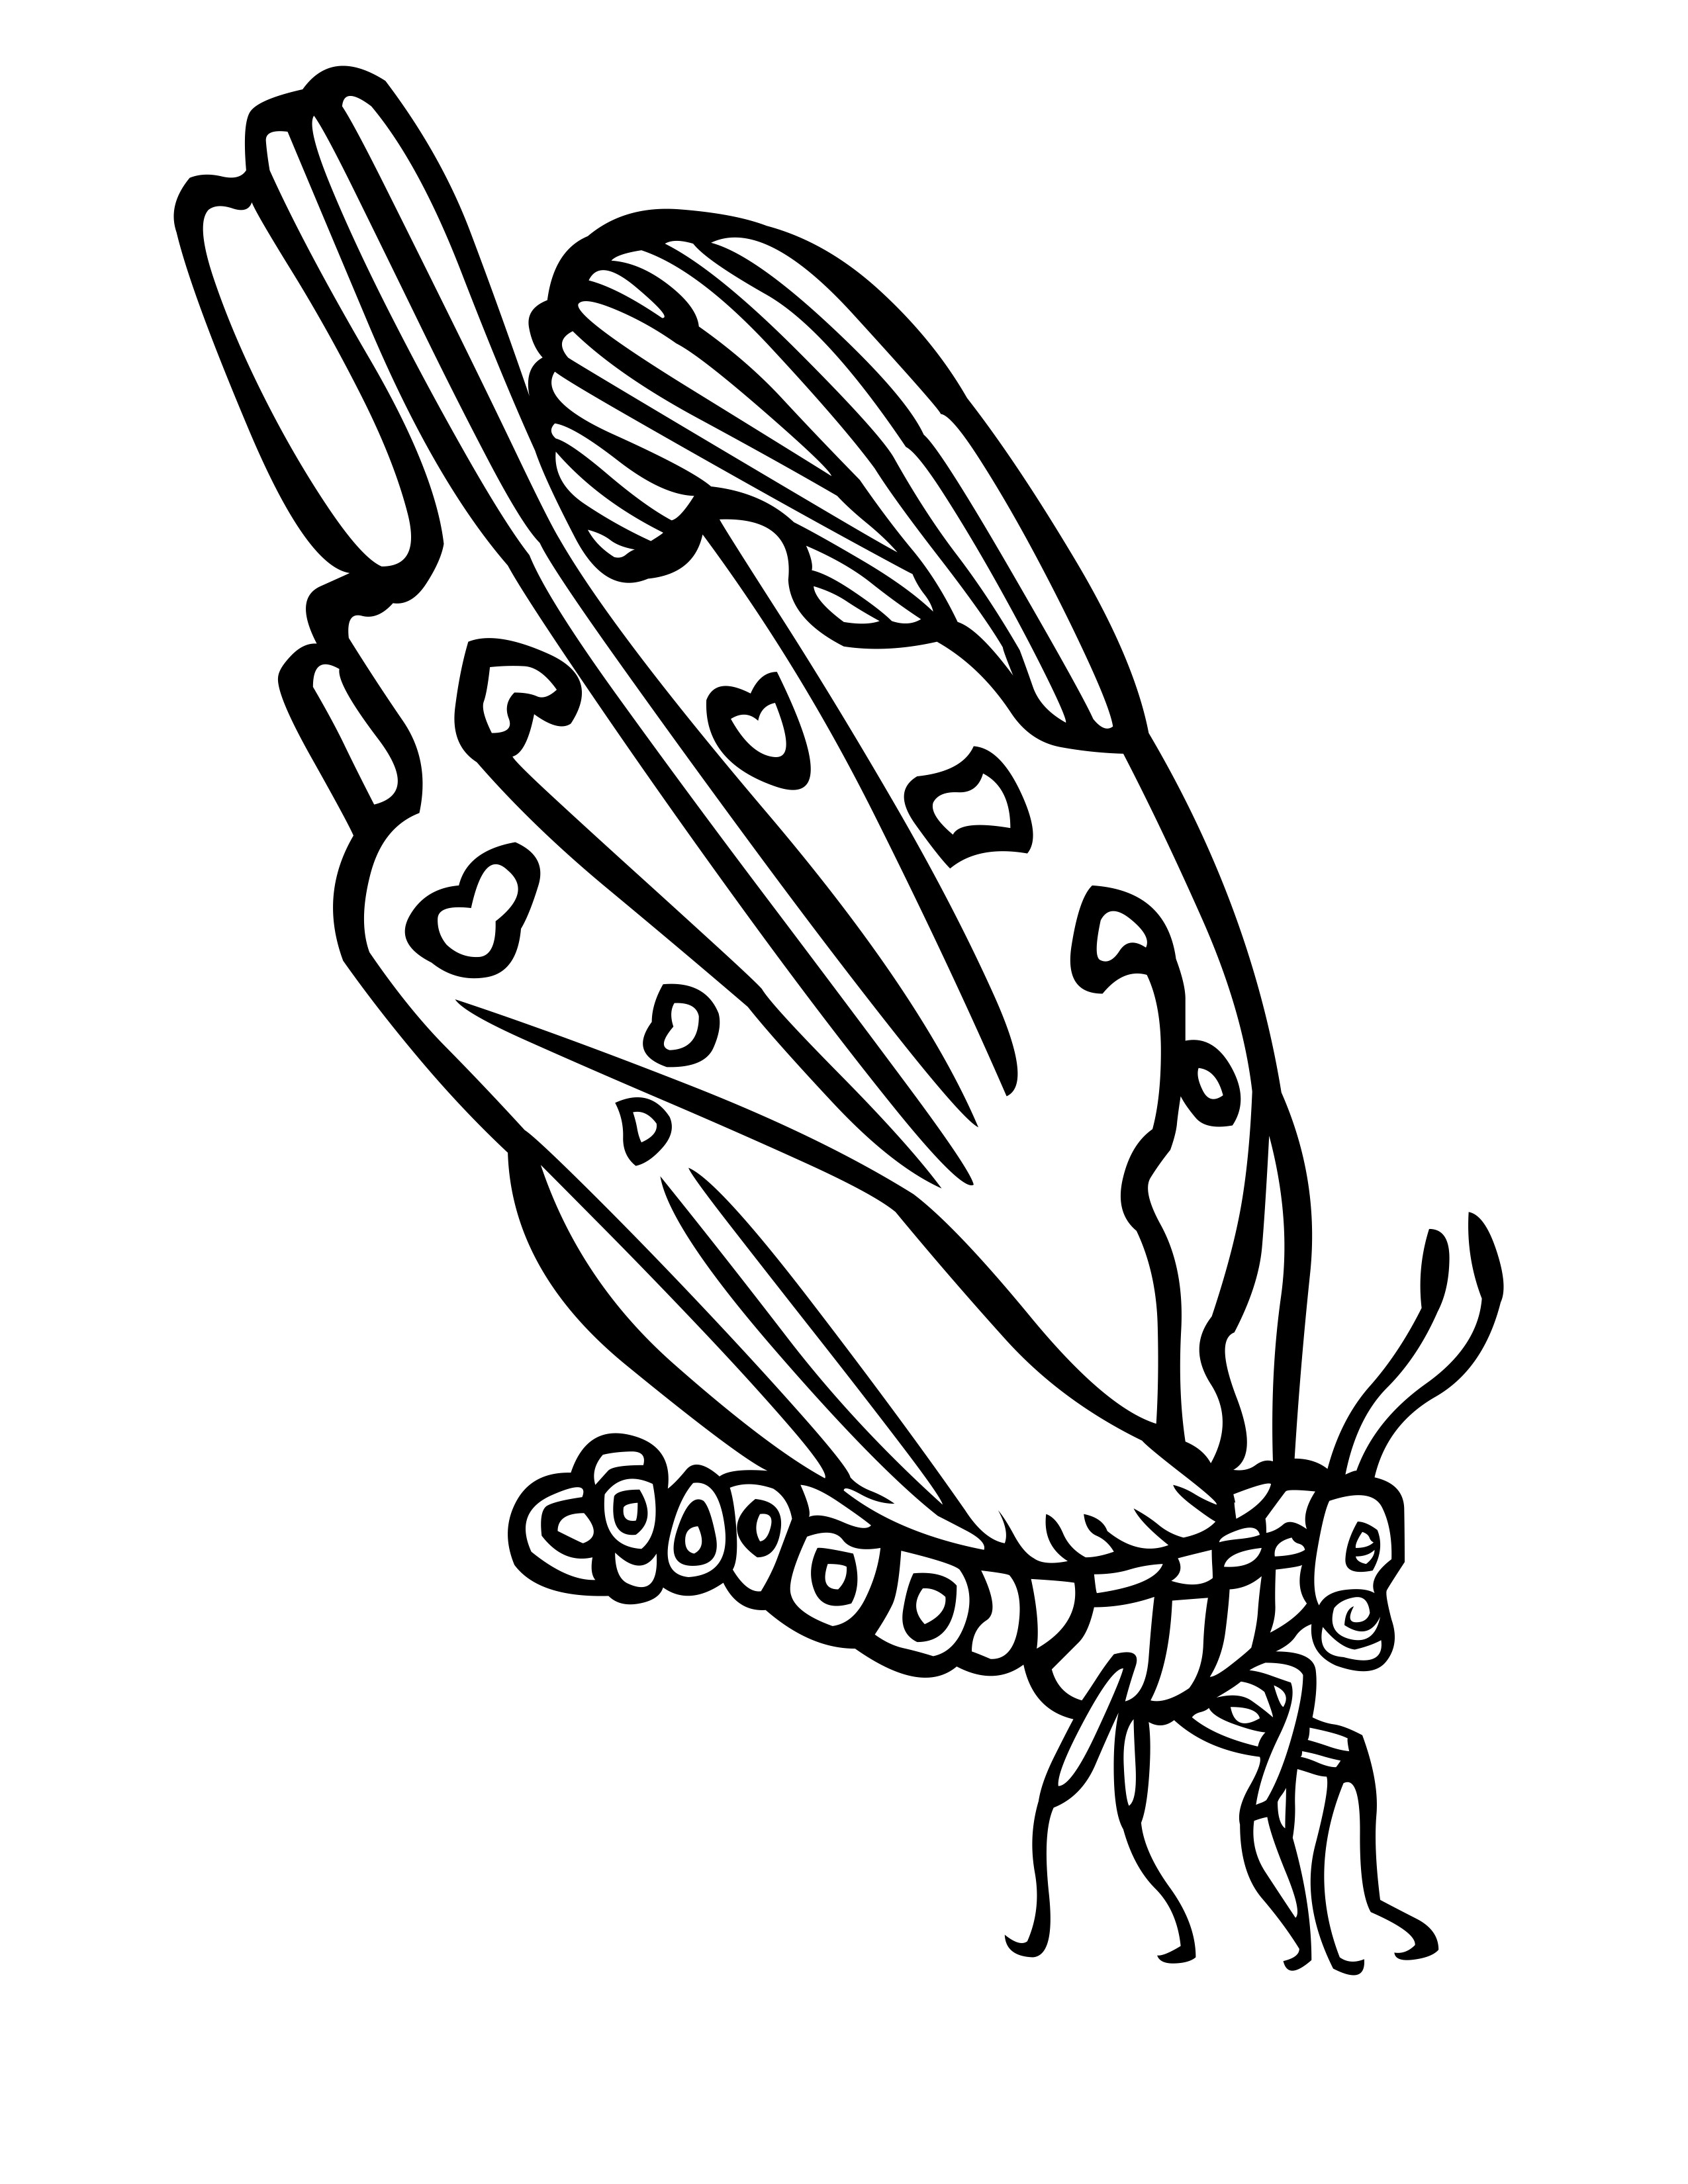 Butterfly wings coloring pages - Butterfly Wings Coloring Pages 58